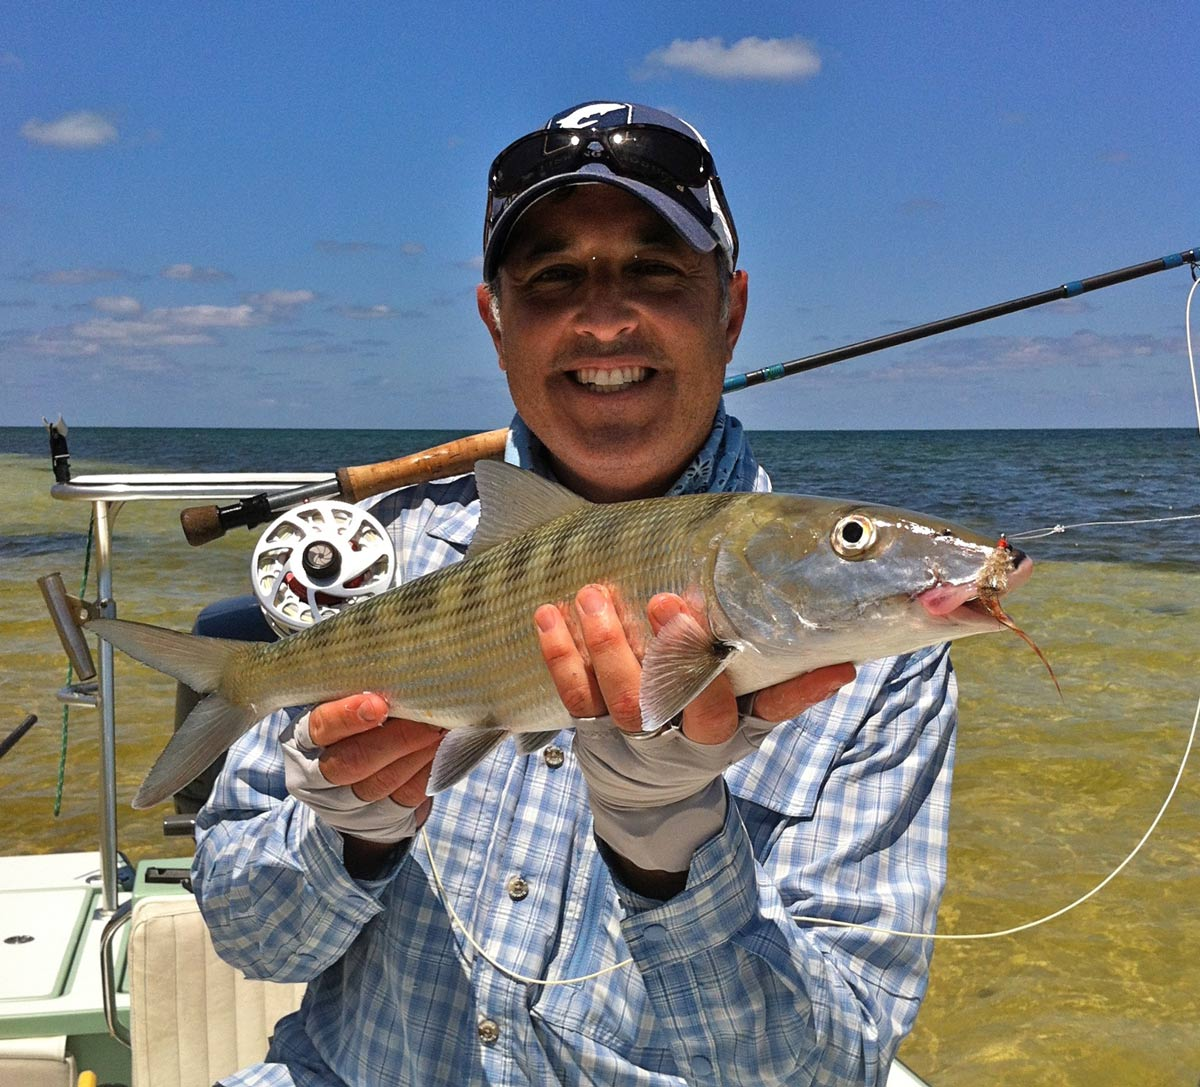 About the captain awol fishing guide for Fly fishing miami